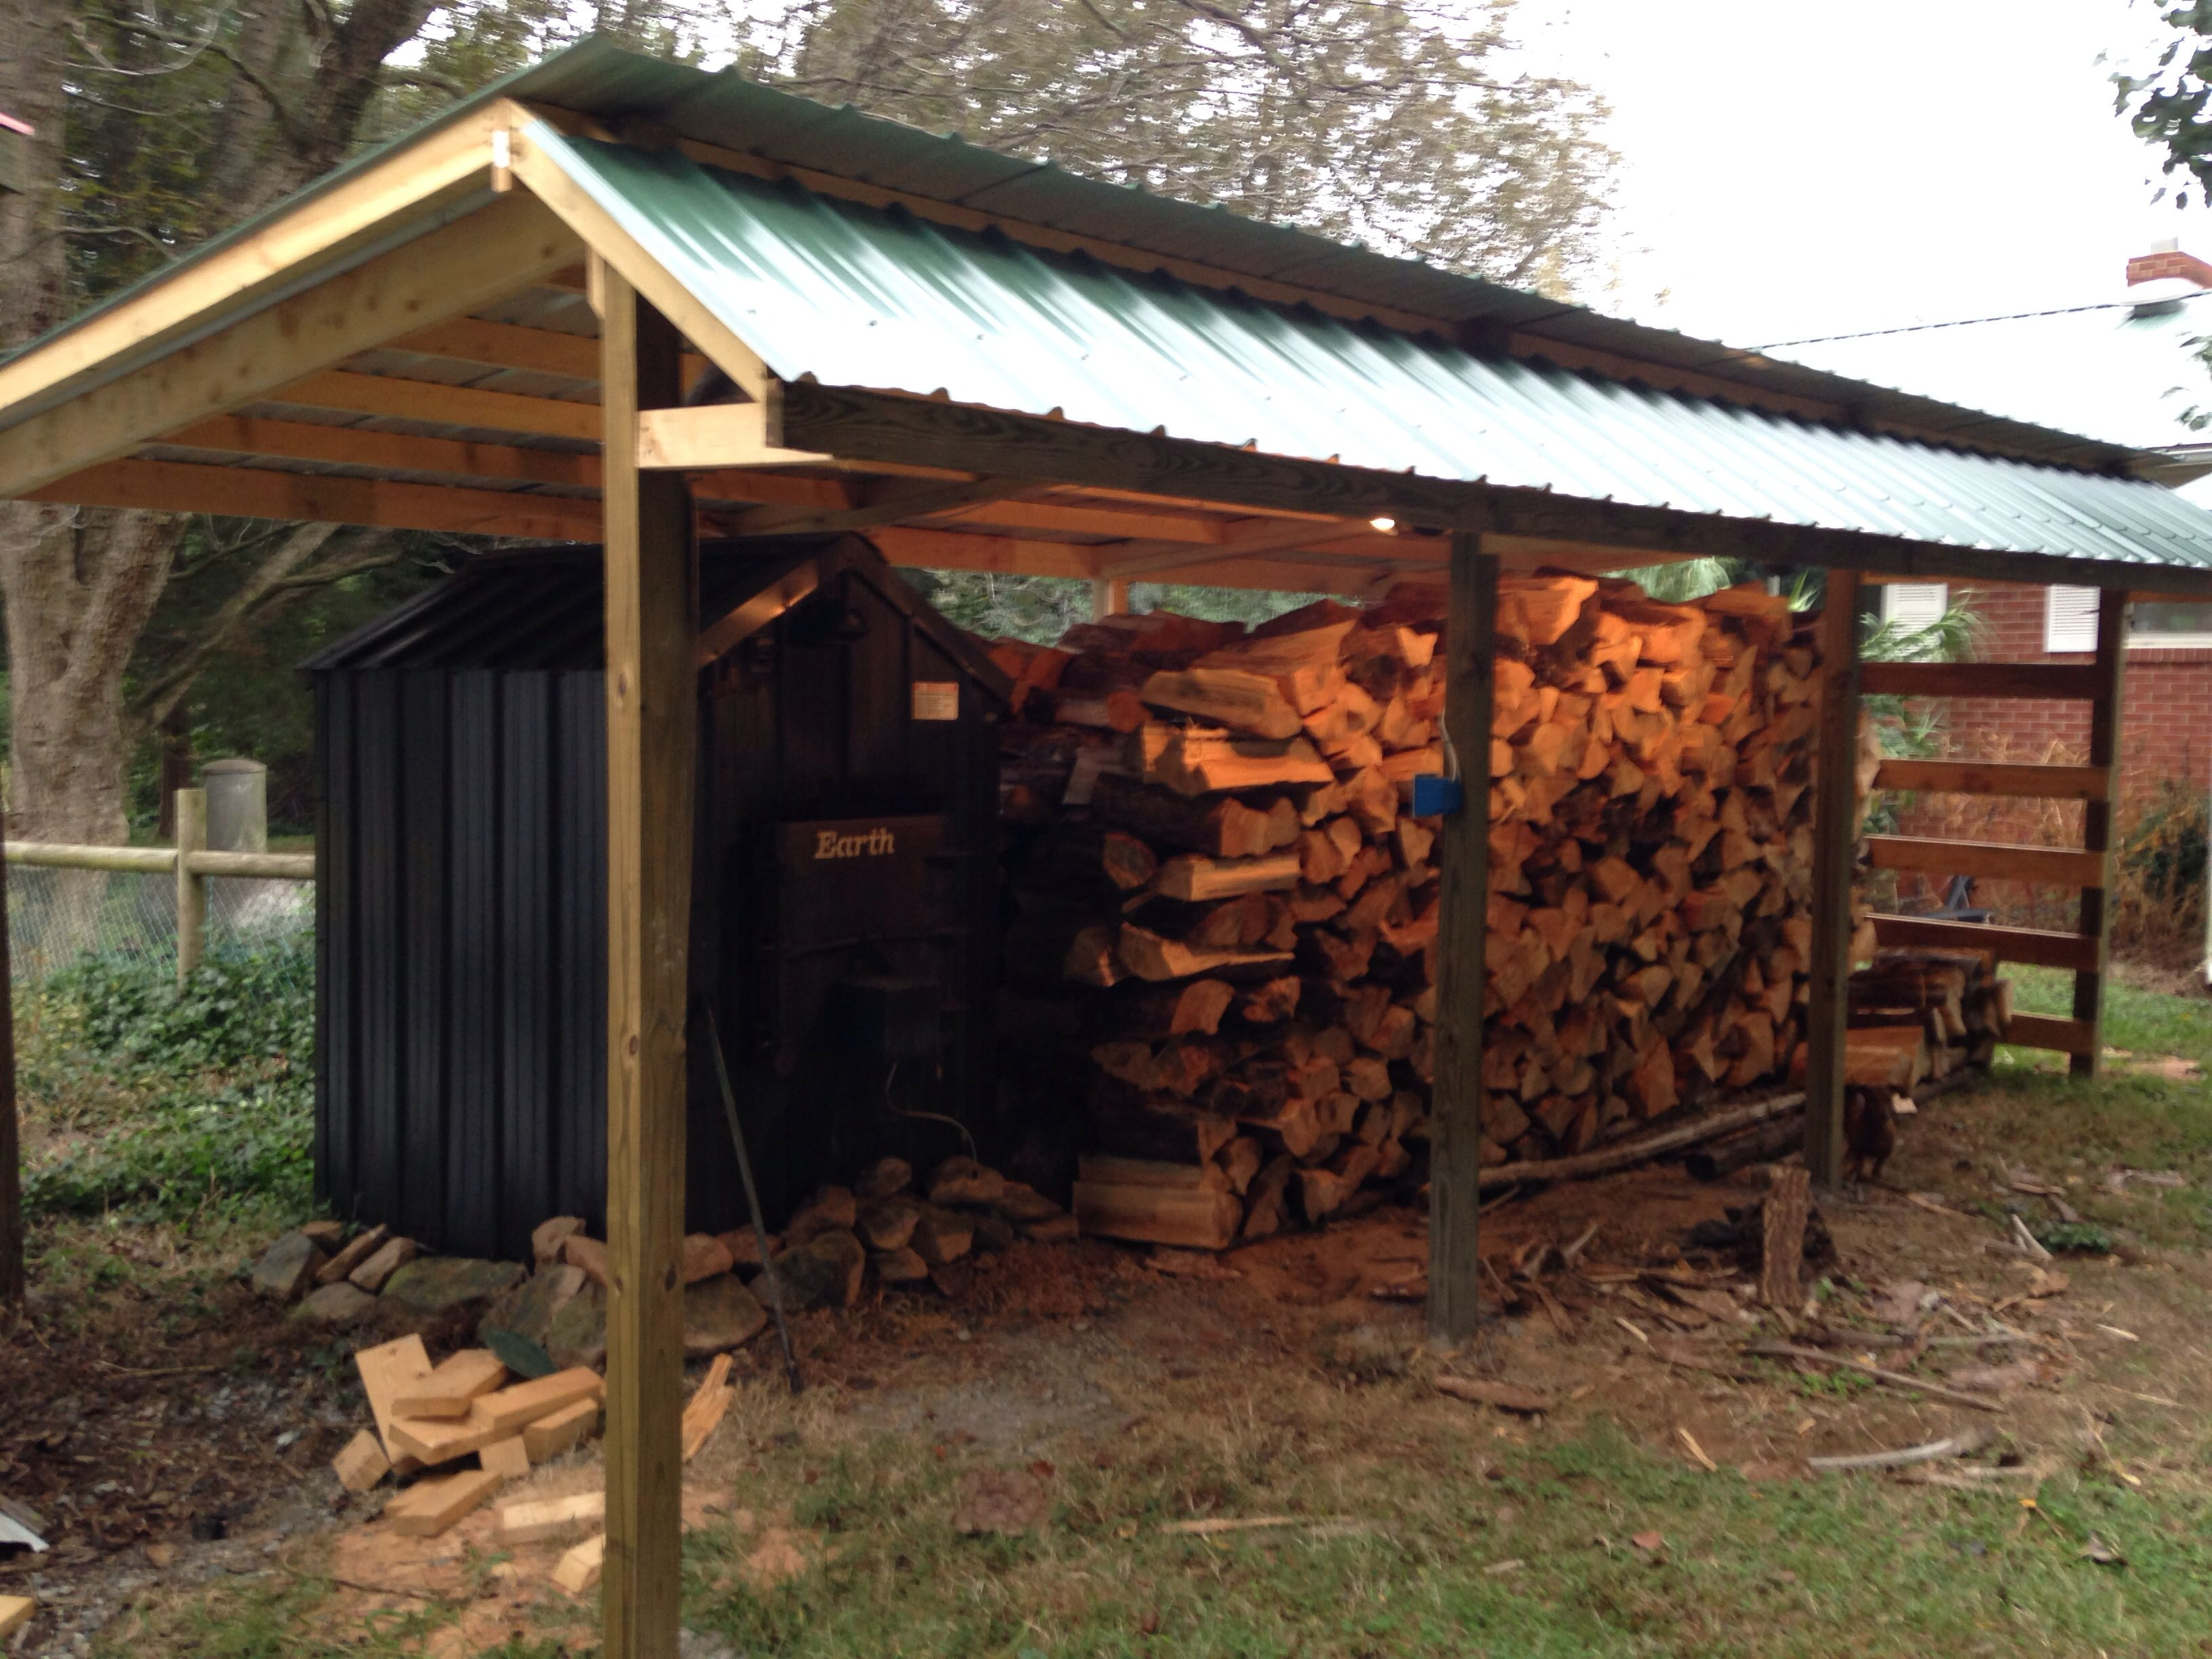 Pin By Bryan Russell On Homeplace Outdoor Wood Burner Outdoor Wood Furnace Wood Furnace